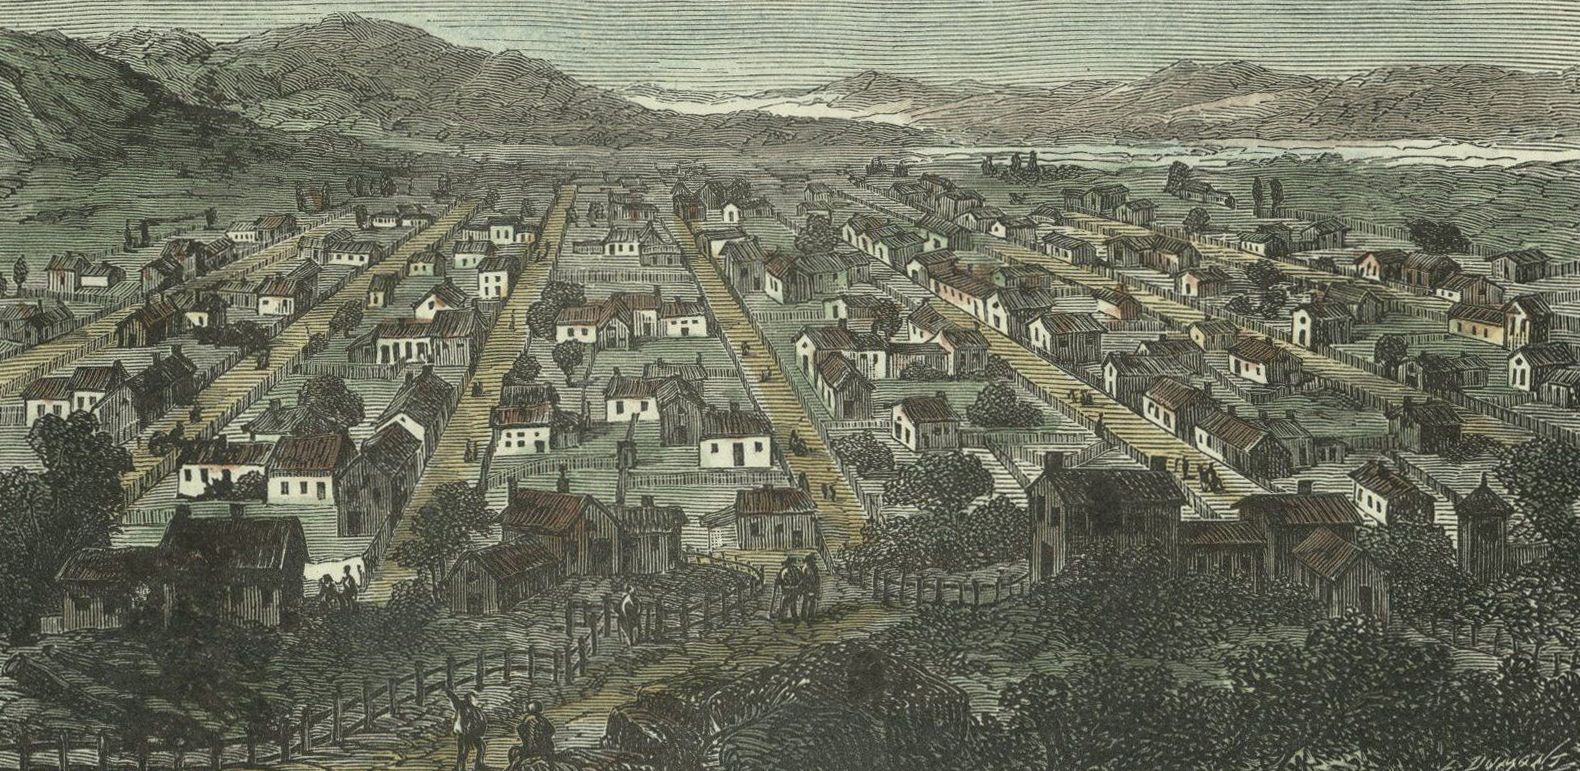 undated chromolithograph of early Salt Lake City settlement from unidentified book in French